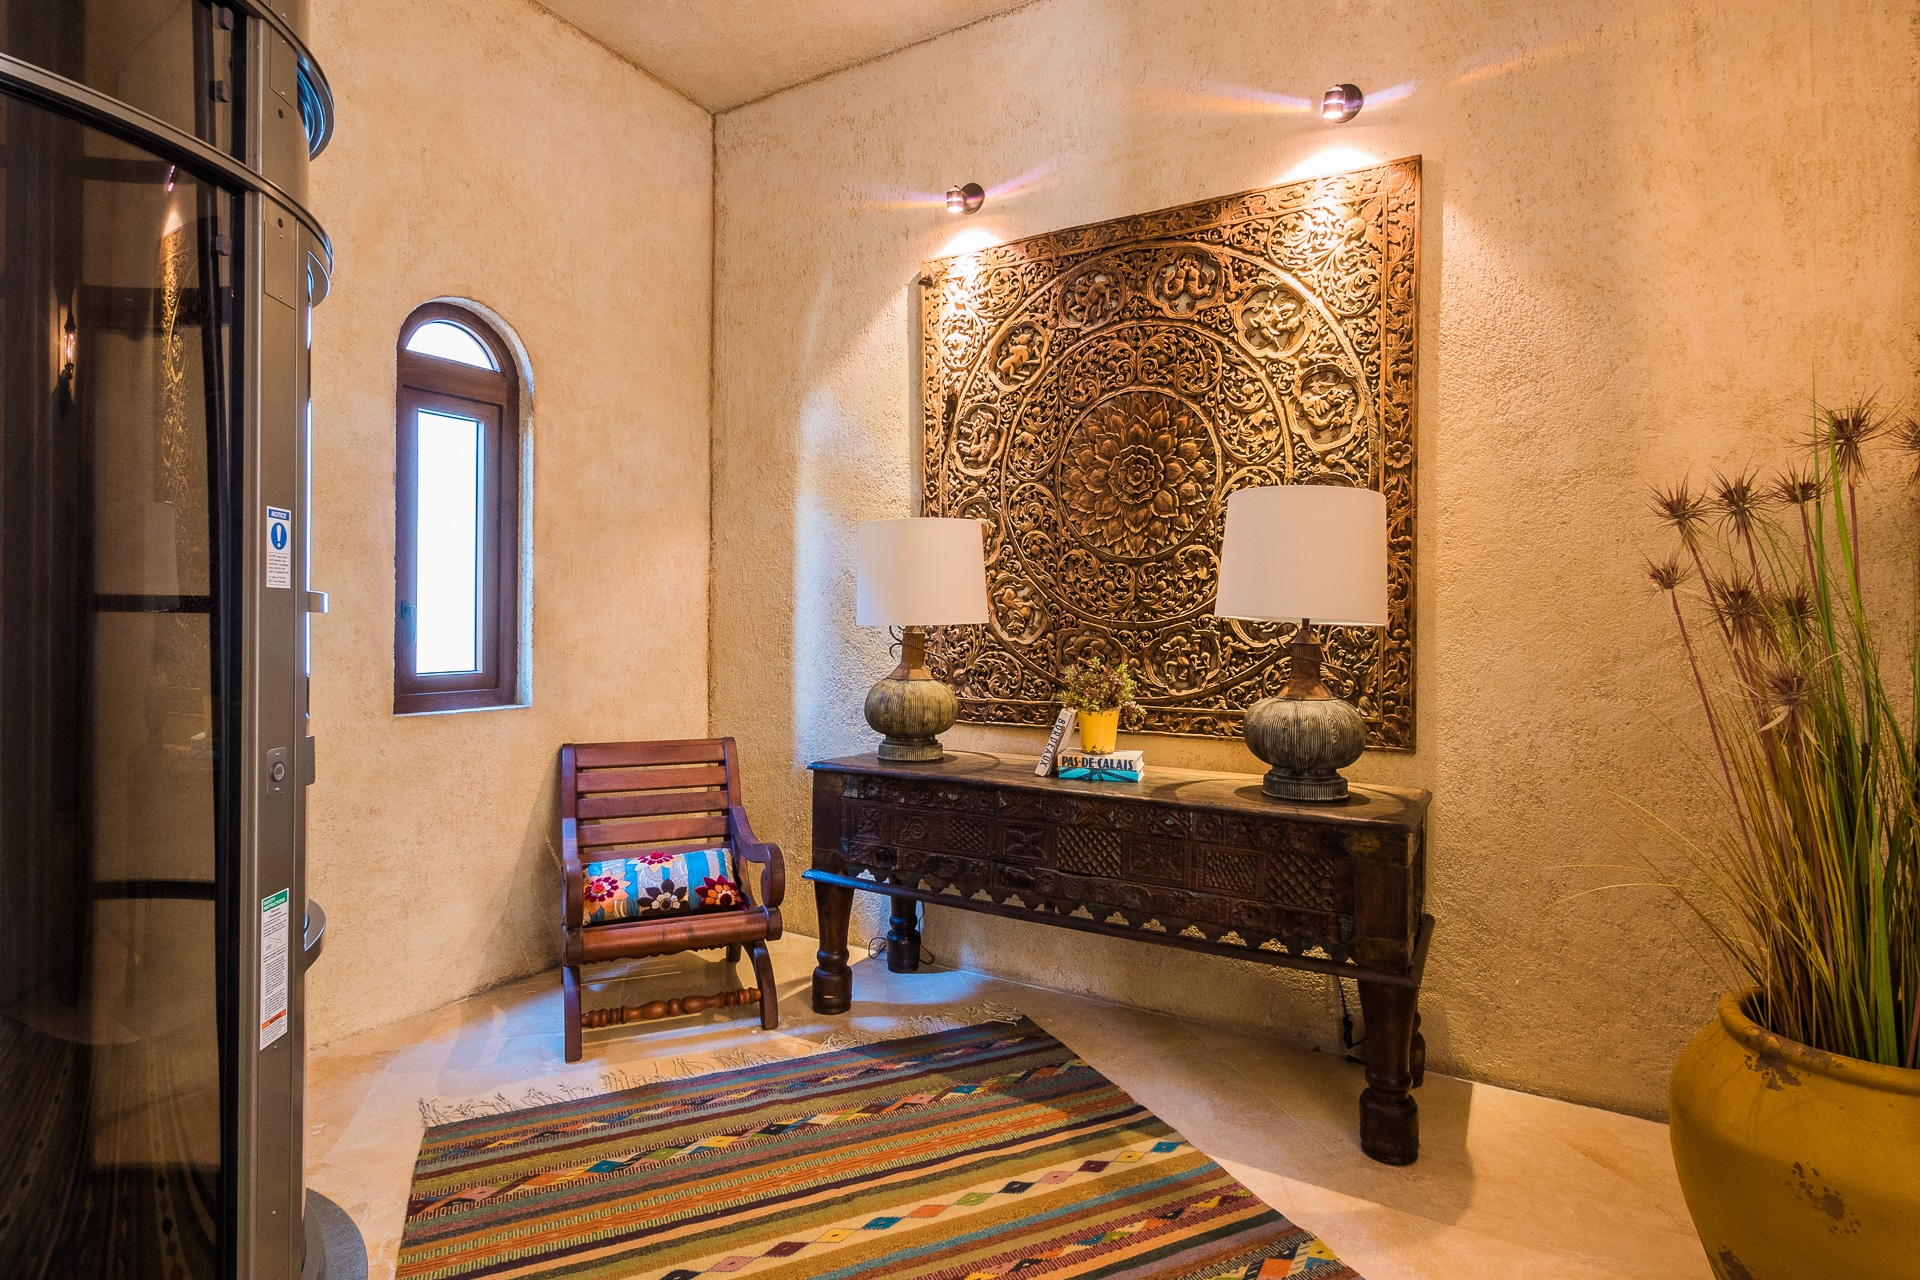 Pedregal villa deseo cabo construction hundreds of thousands of dollars in granite and stone work along with the most detailed tile and marble work set villa deseo above all others dailygadgetfo Choice Image